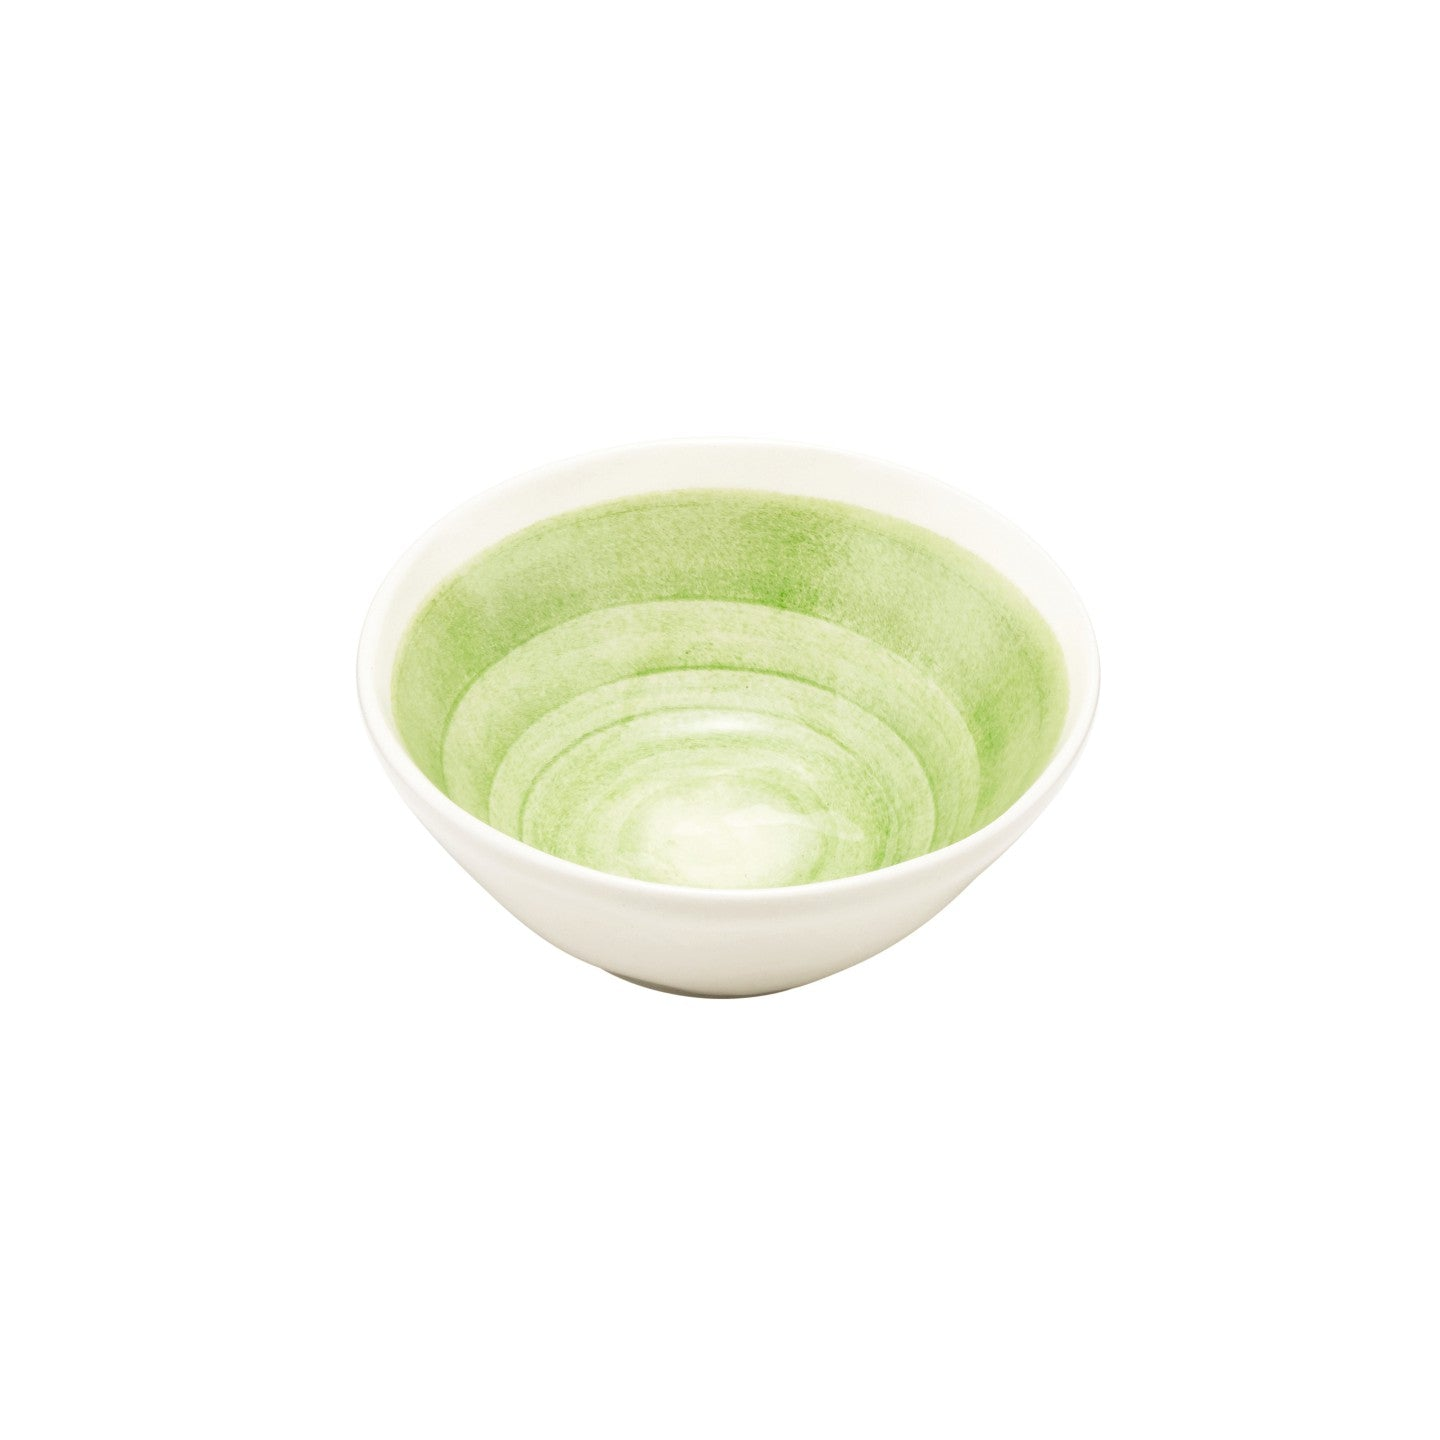 Green 18cm Cereal Bowl